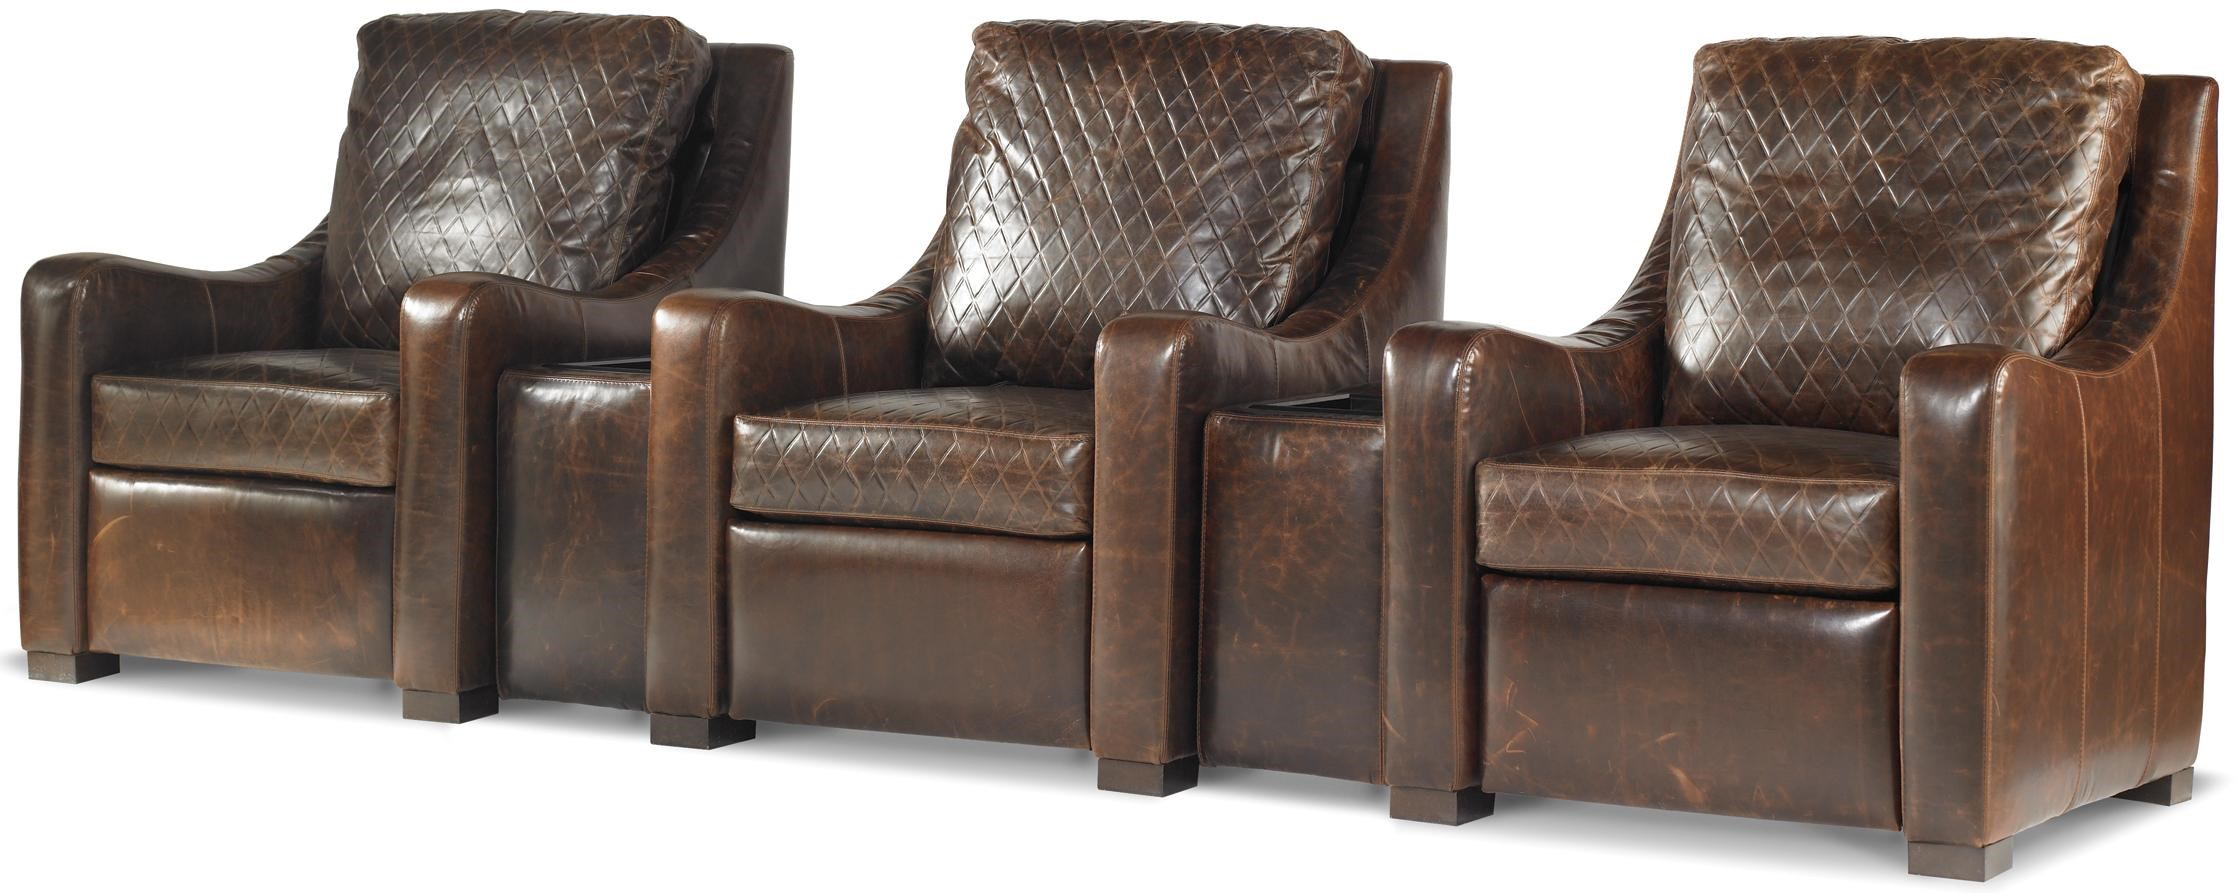 MotionCraft By Sherrill Home Theater Seating 209 Series Home Theater Seating